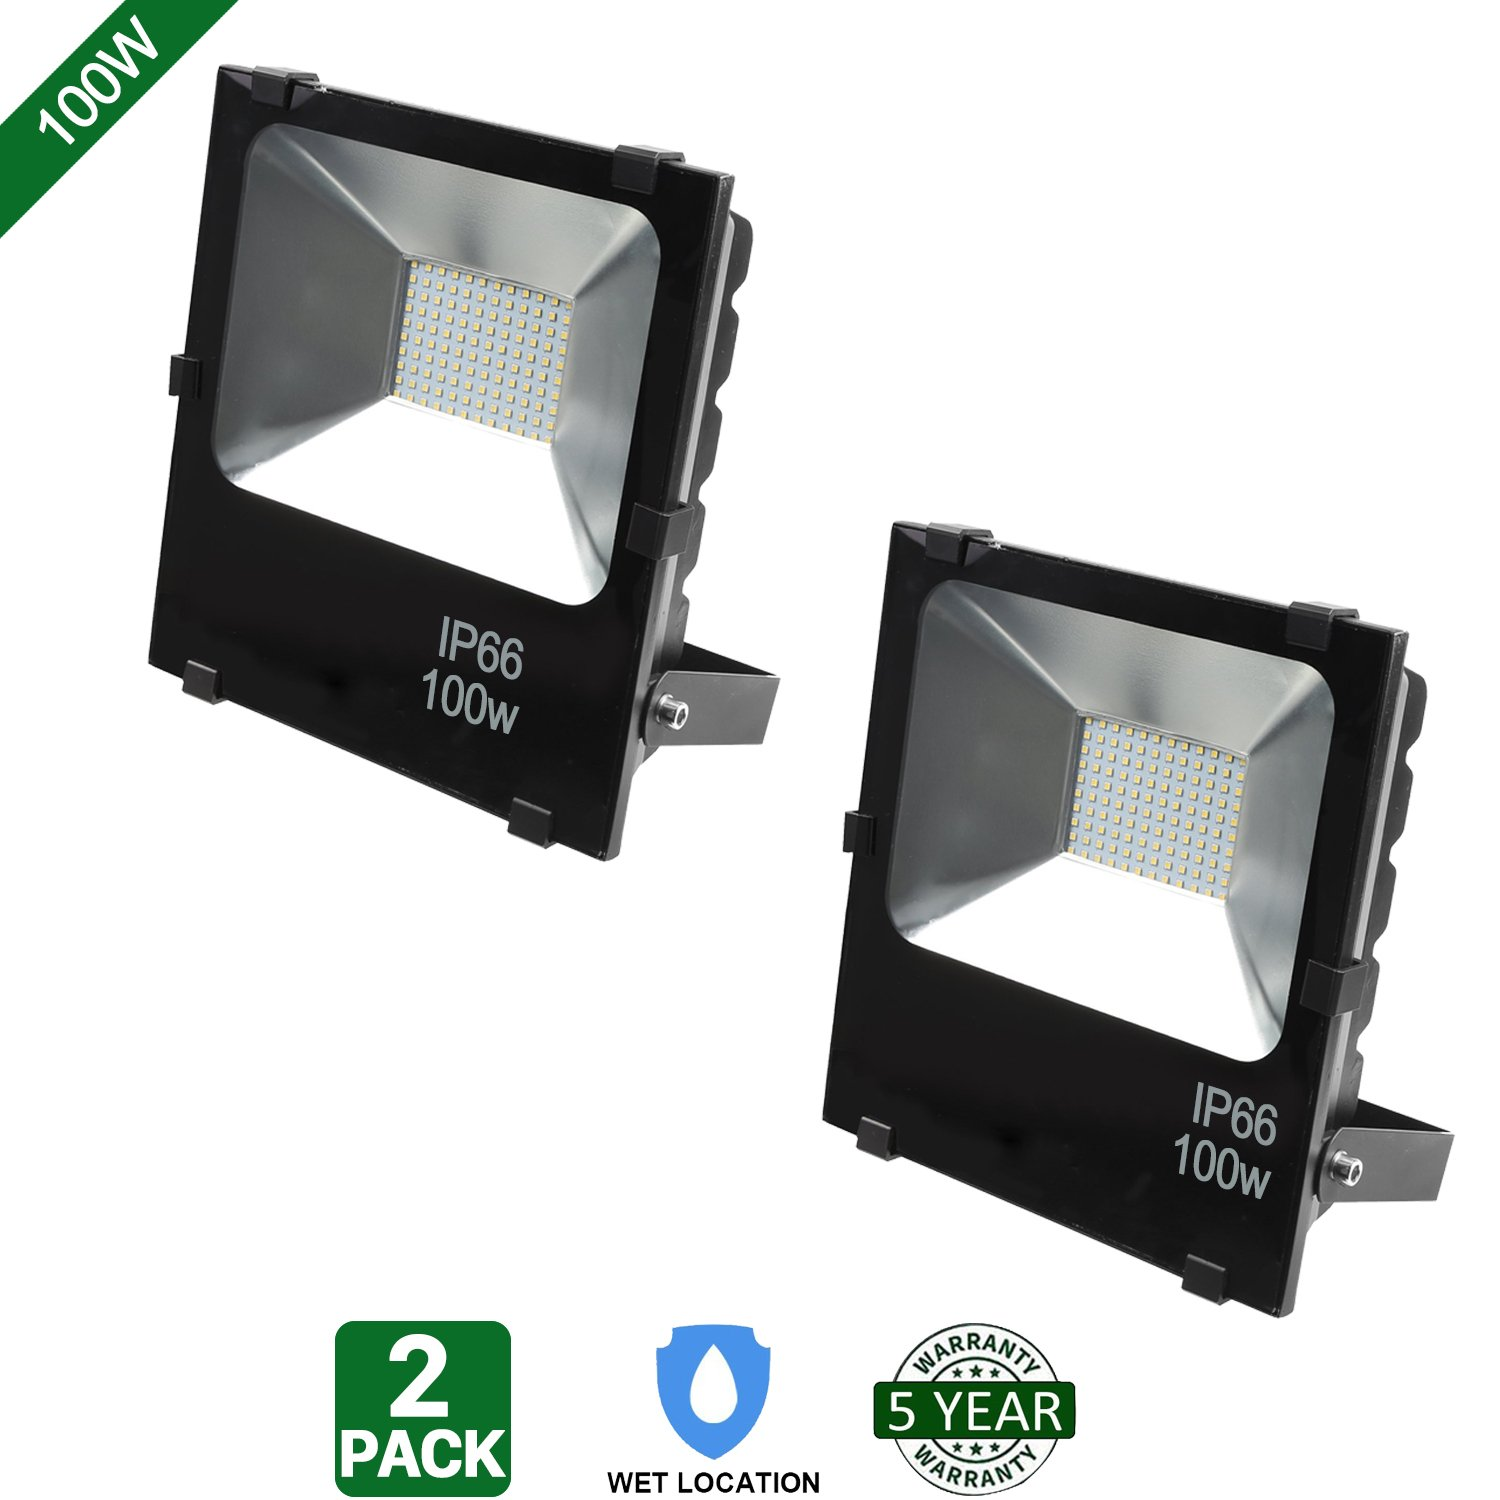 Hykolity 100W LED Flood Light Outdoor Security Light Weatherproof Parking Lot Warehouse Perimeter Lighting Fixture [400W Equivalent] High Power 10000lm 5000k Residential/Commercial Use-Pack of 2